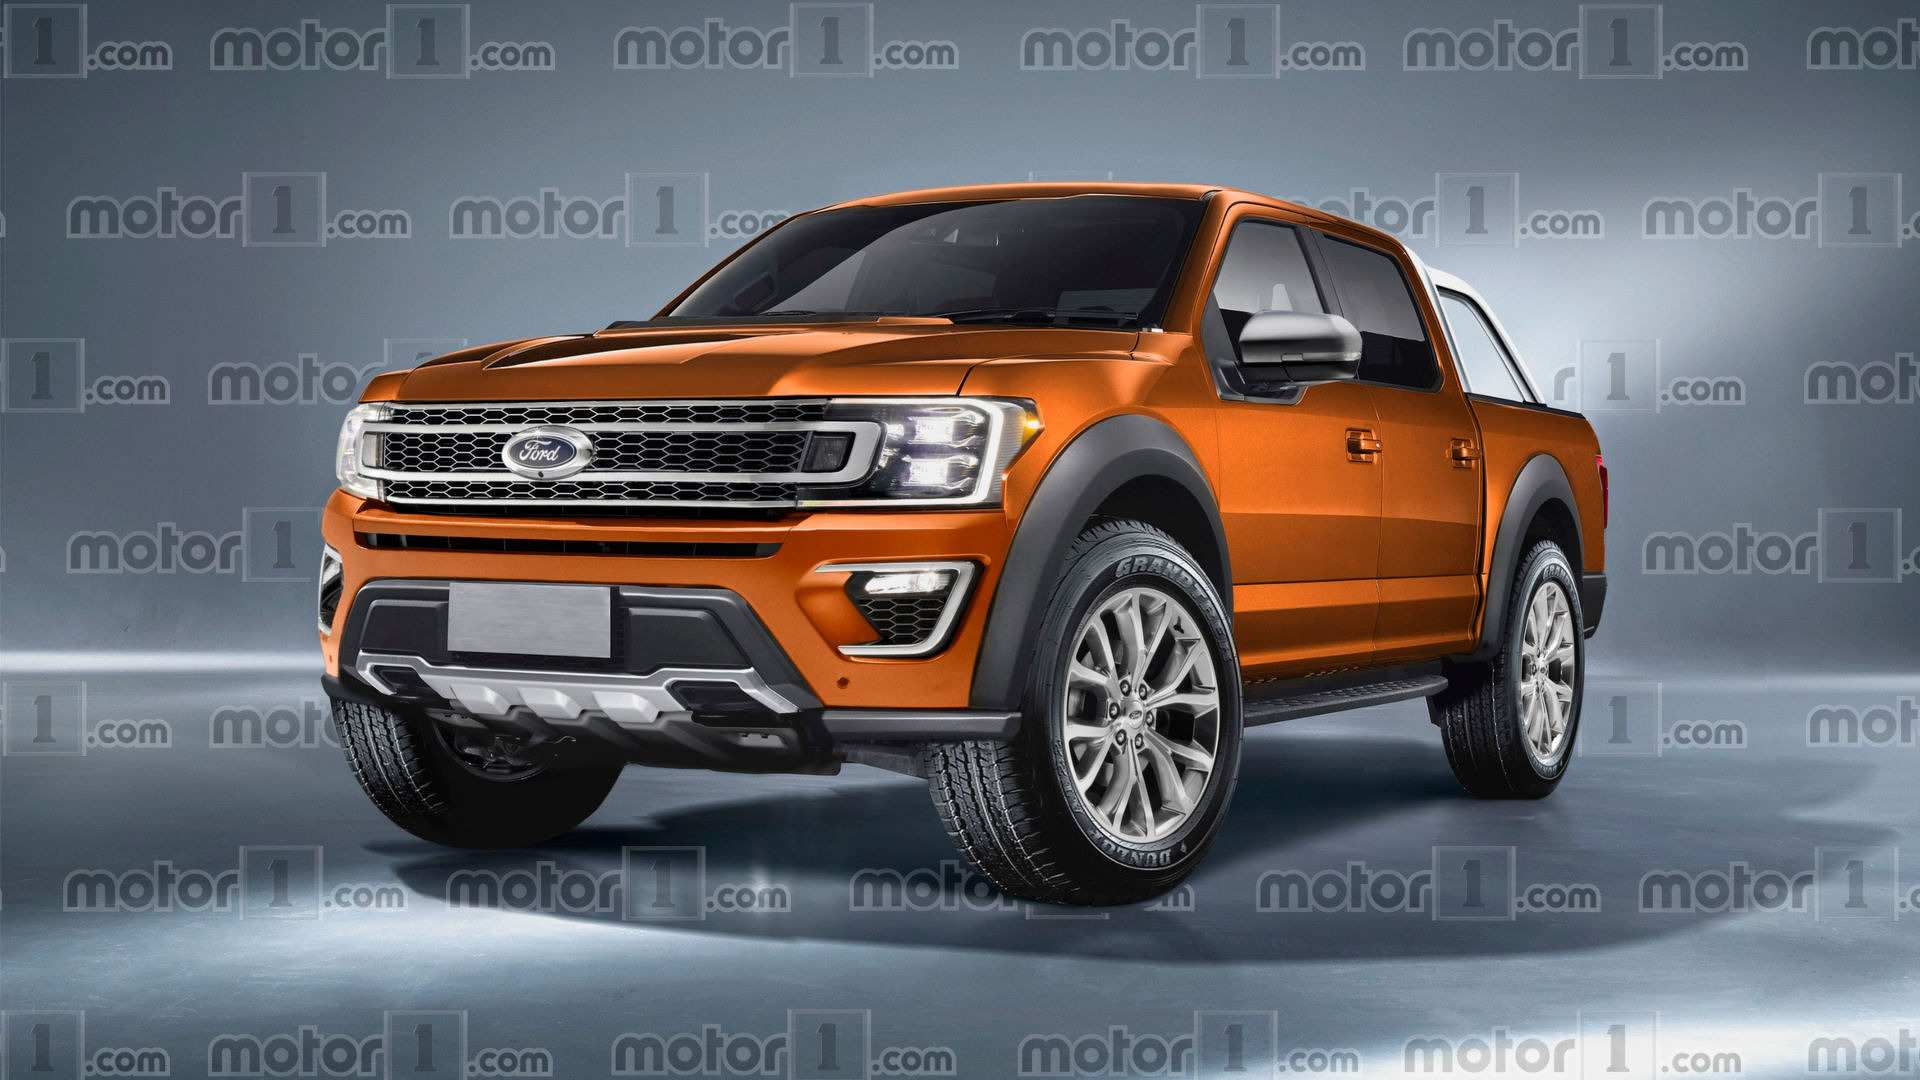 33 Concept of Ford Ranger 2020 Australia Price for Ford Ranger 2020 Australia